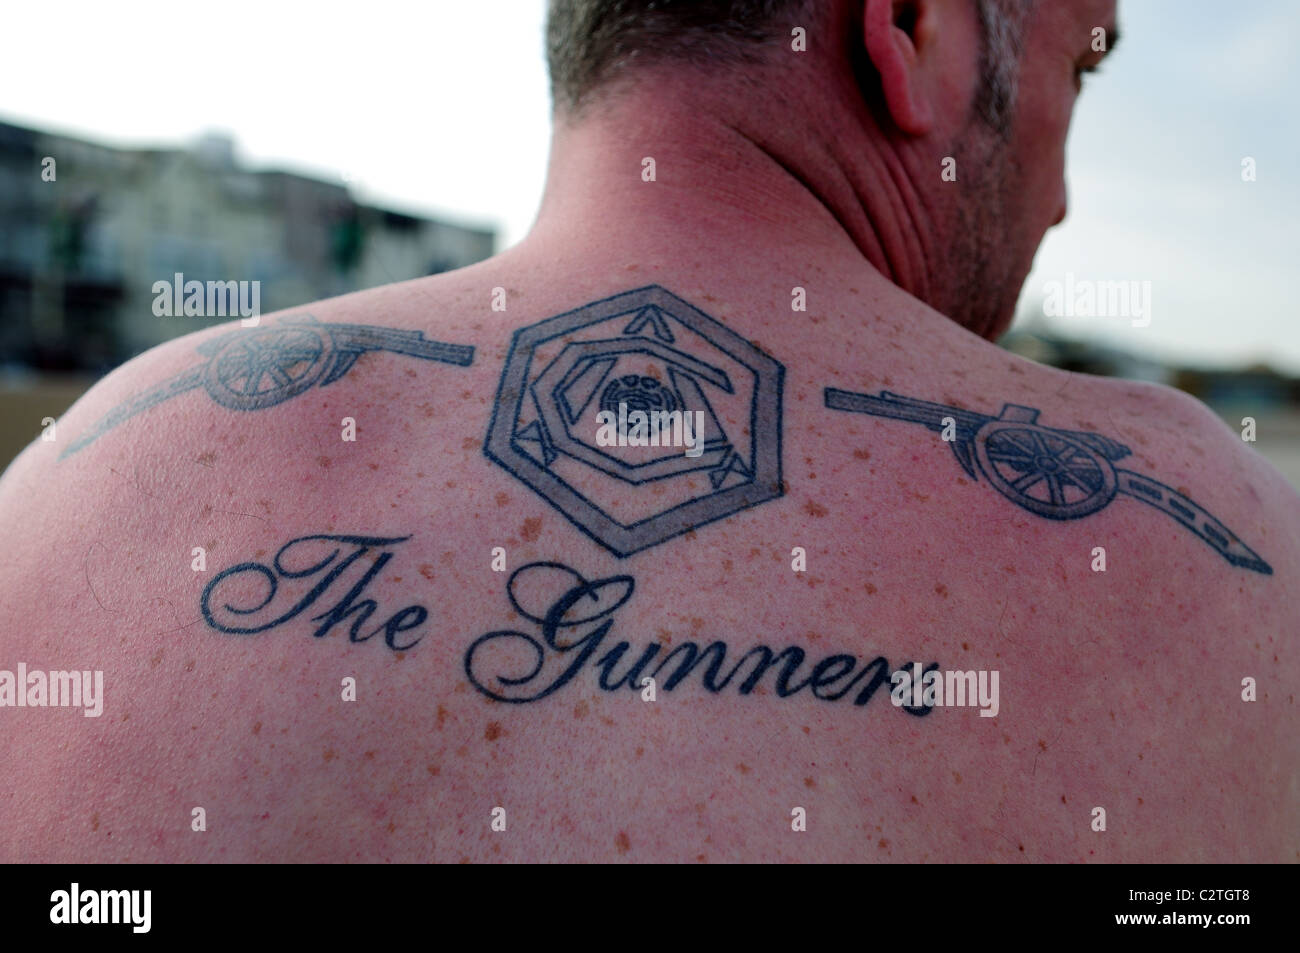 Arsenal Fc Supporter Fan With Tattoo On Arm And Back Stock Photo Alamy